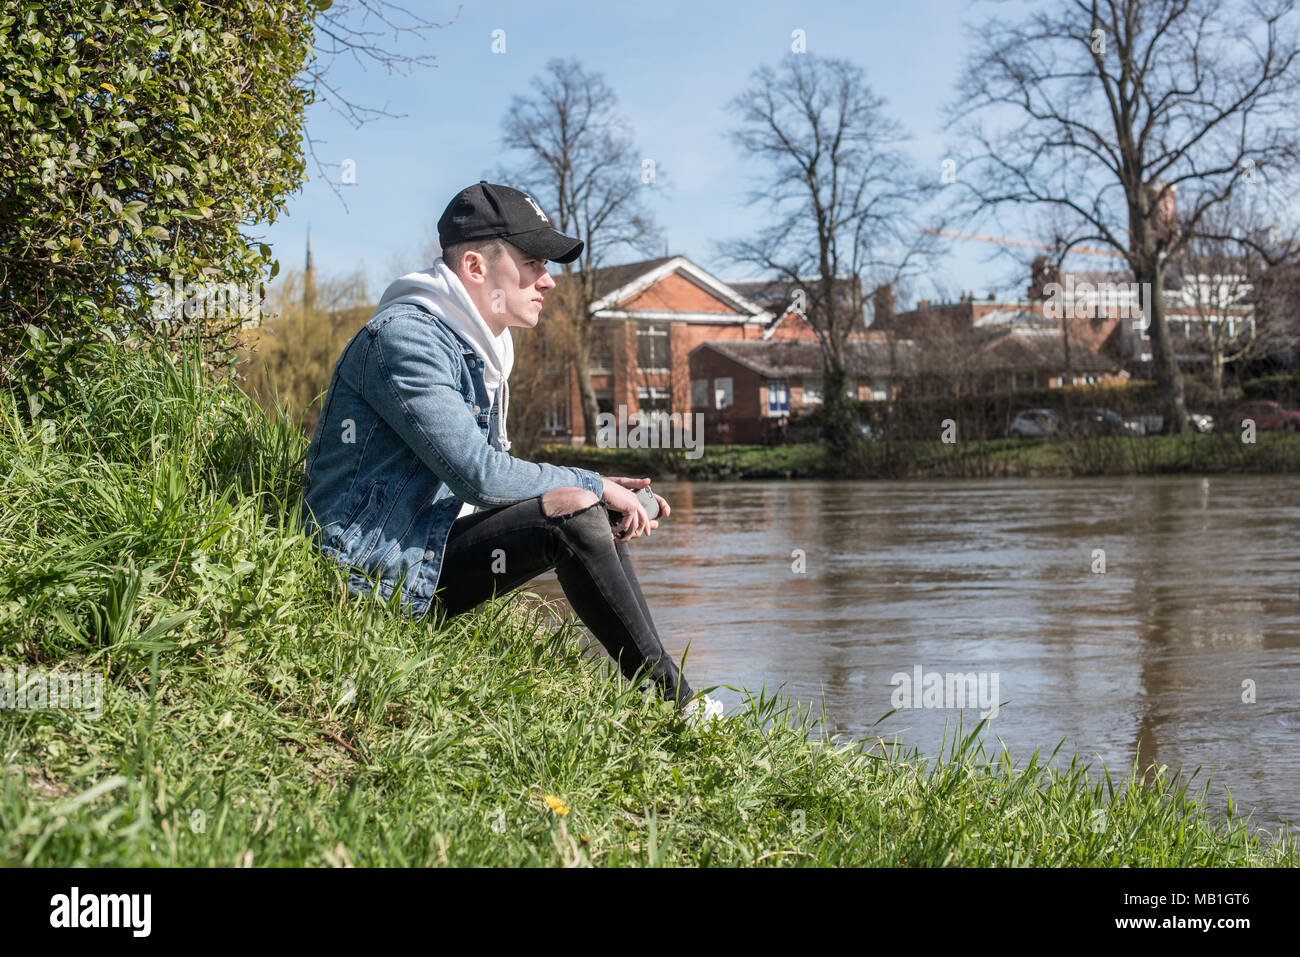 Young male youth sitting next to the river in the beautiful spring sunshine wearing denim jacket and black baseball hat - Stock Image